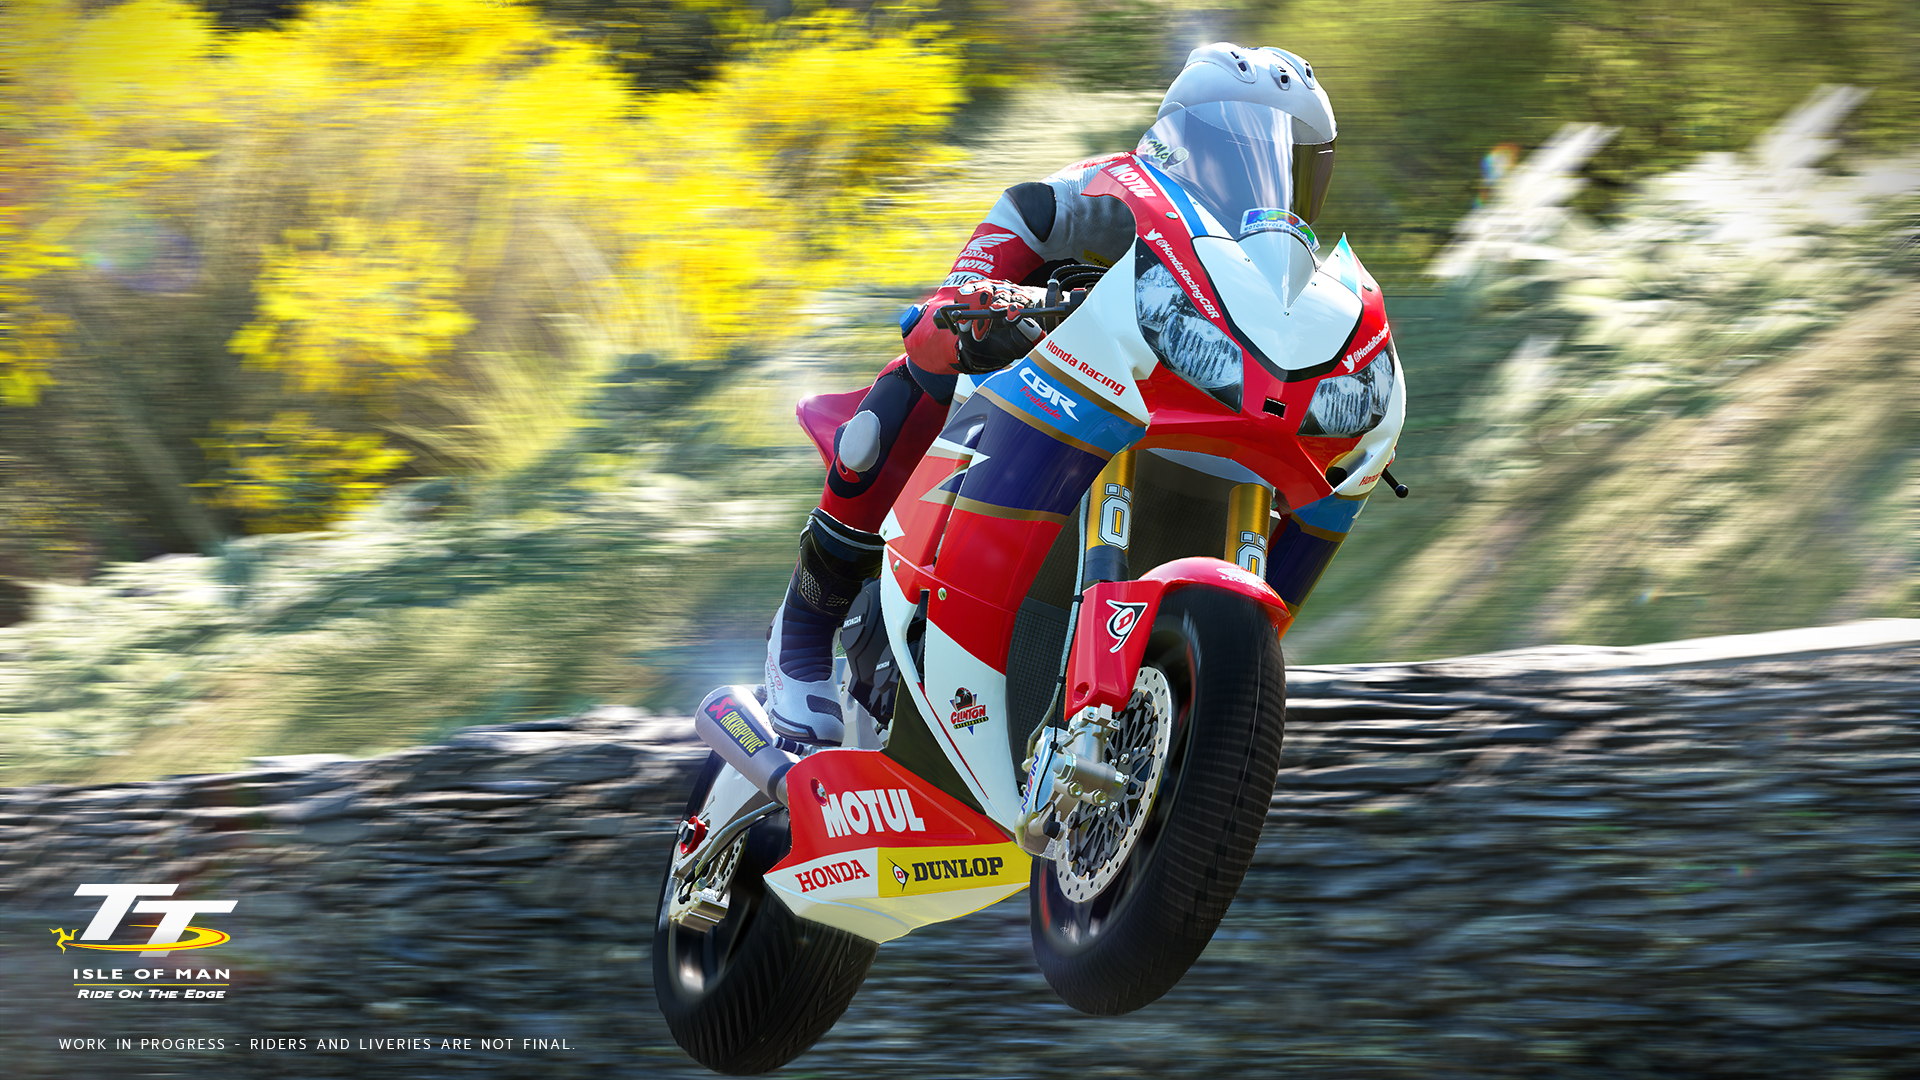 TT Isle Of Man: Ride on the Edge now has a release date